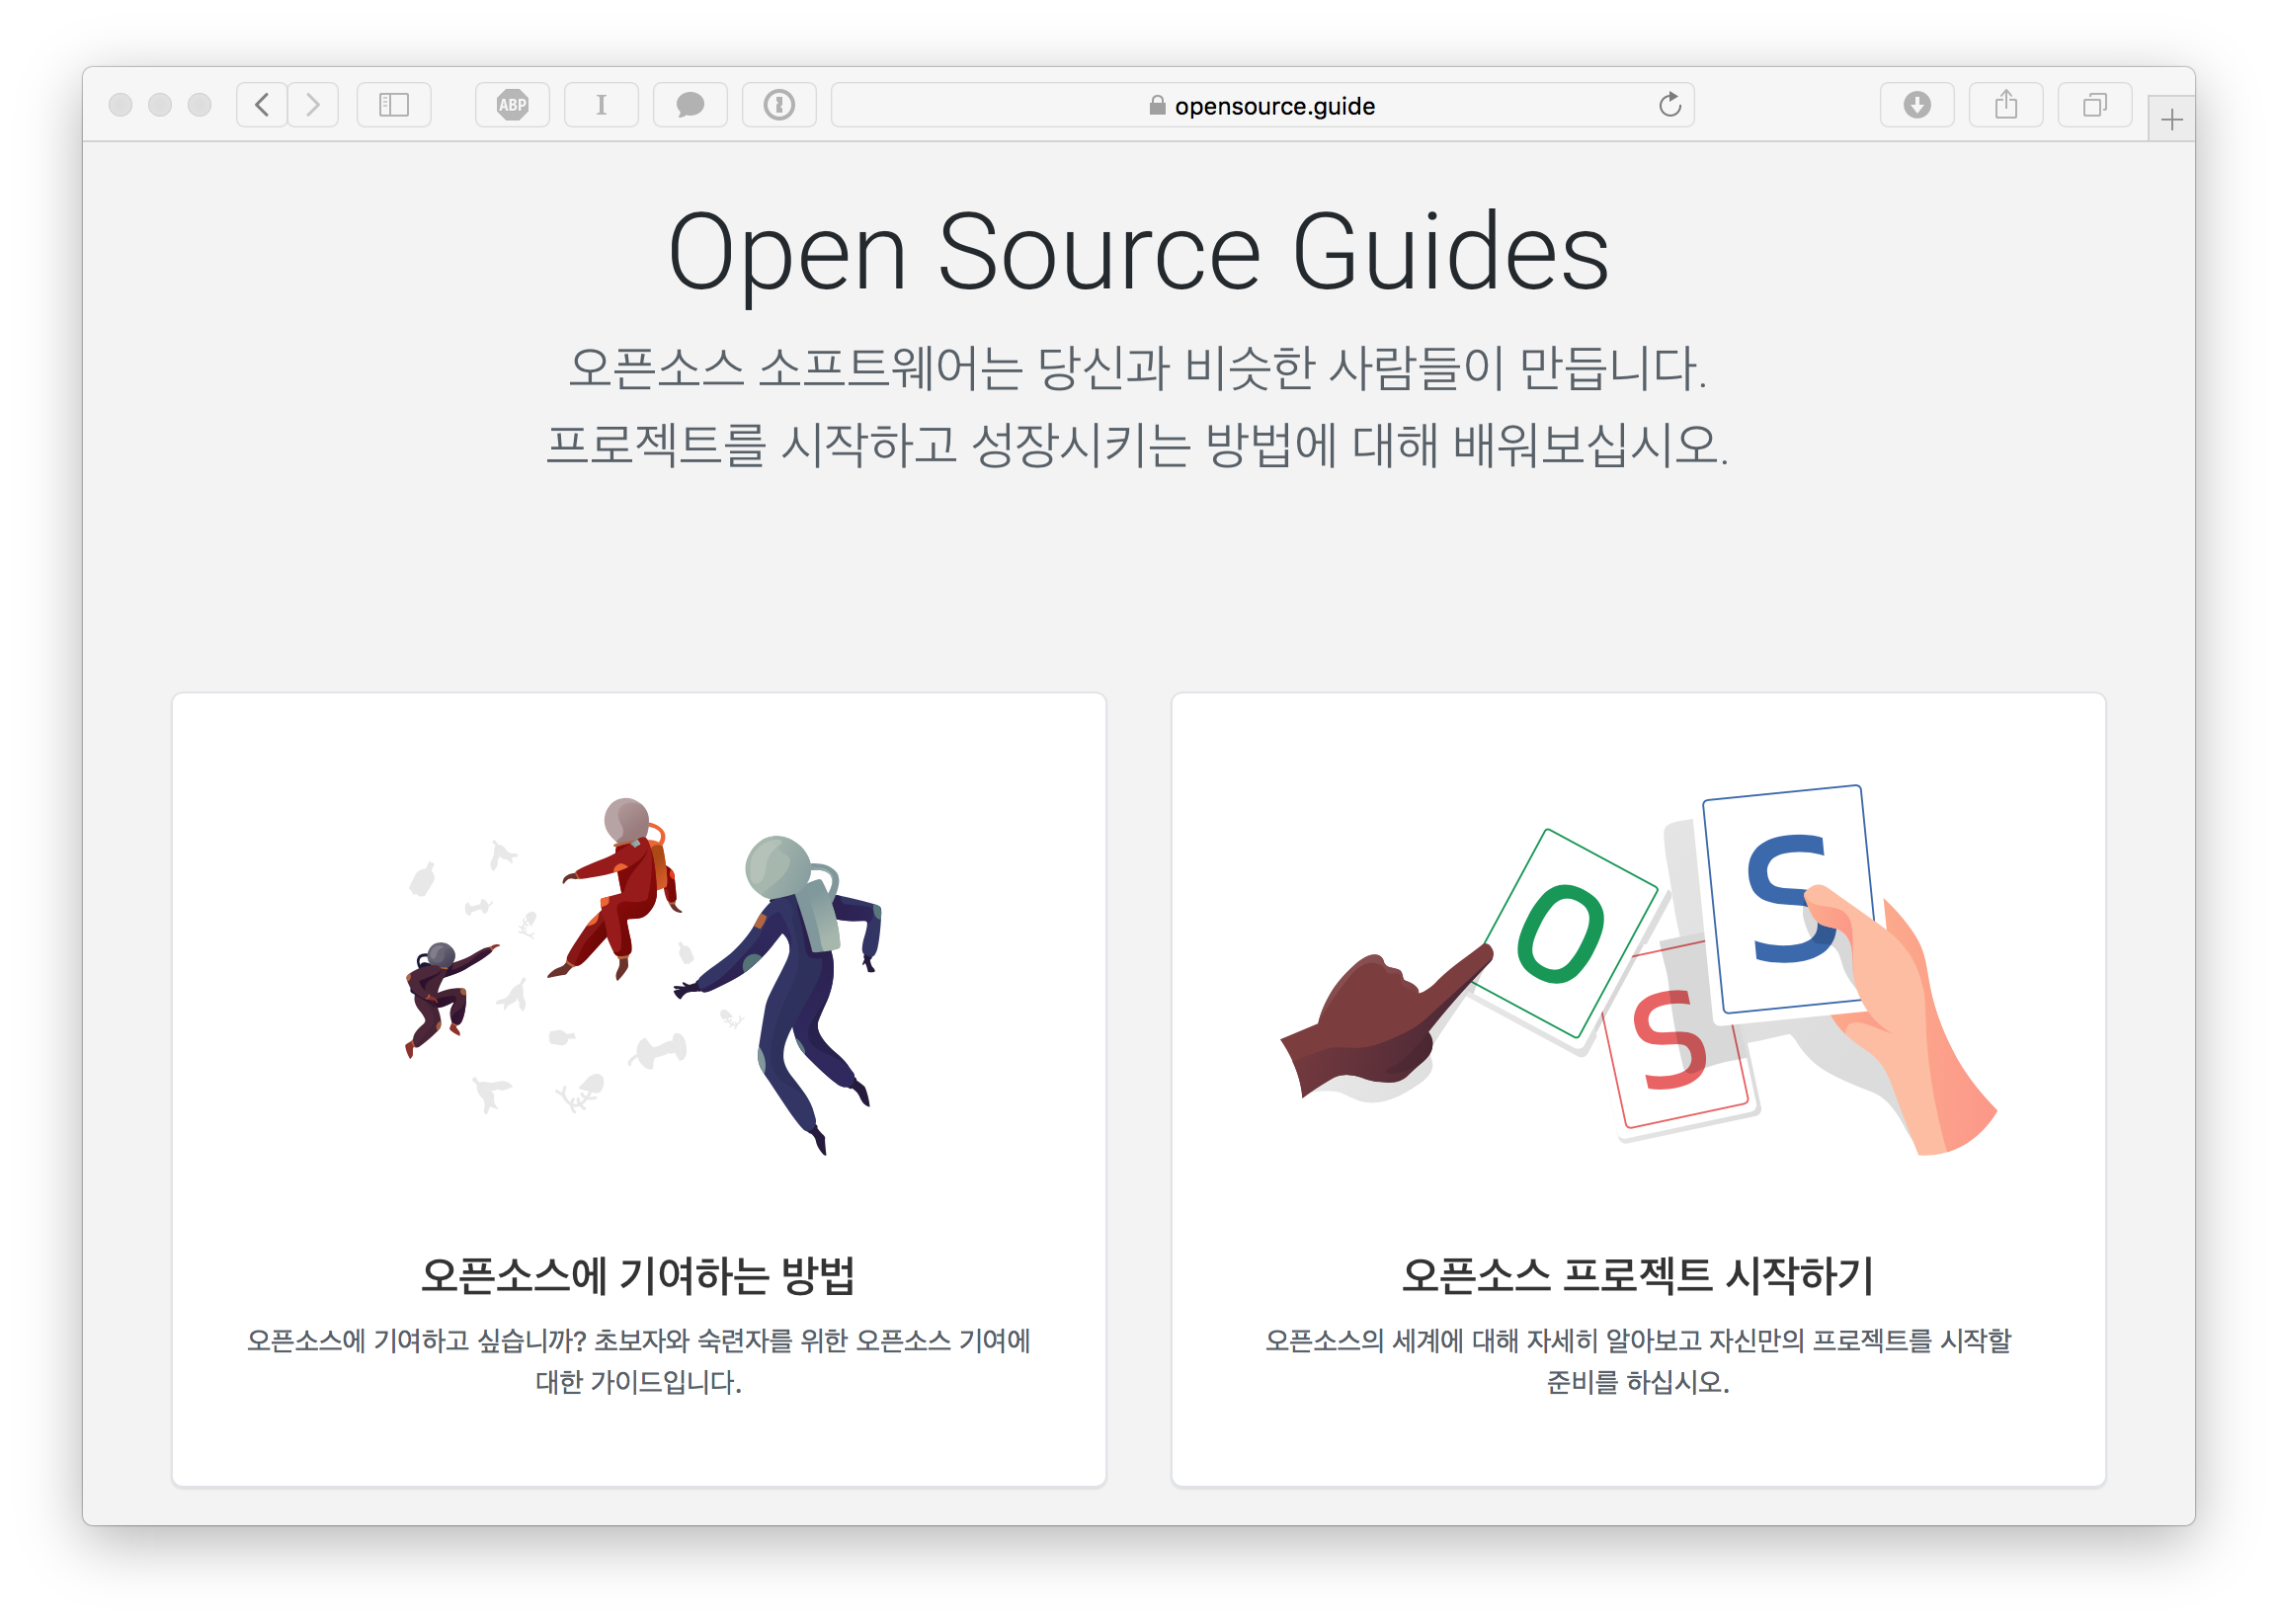 opensource.guide